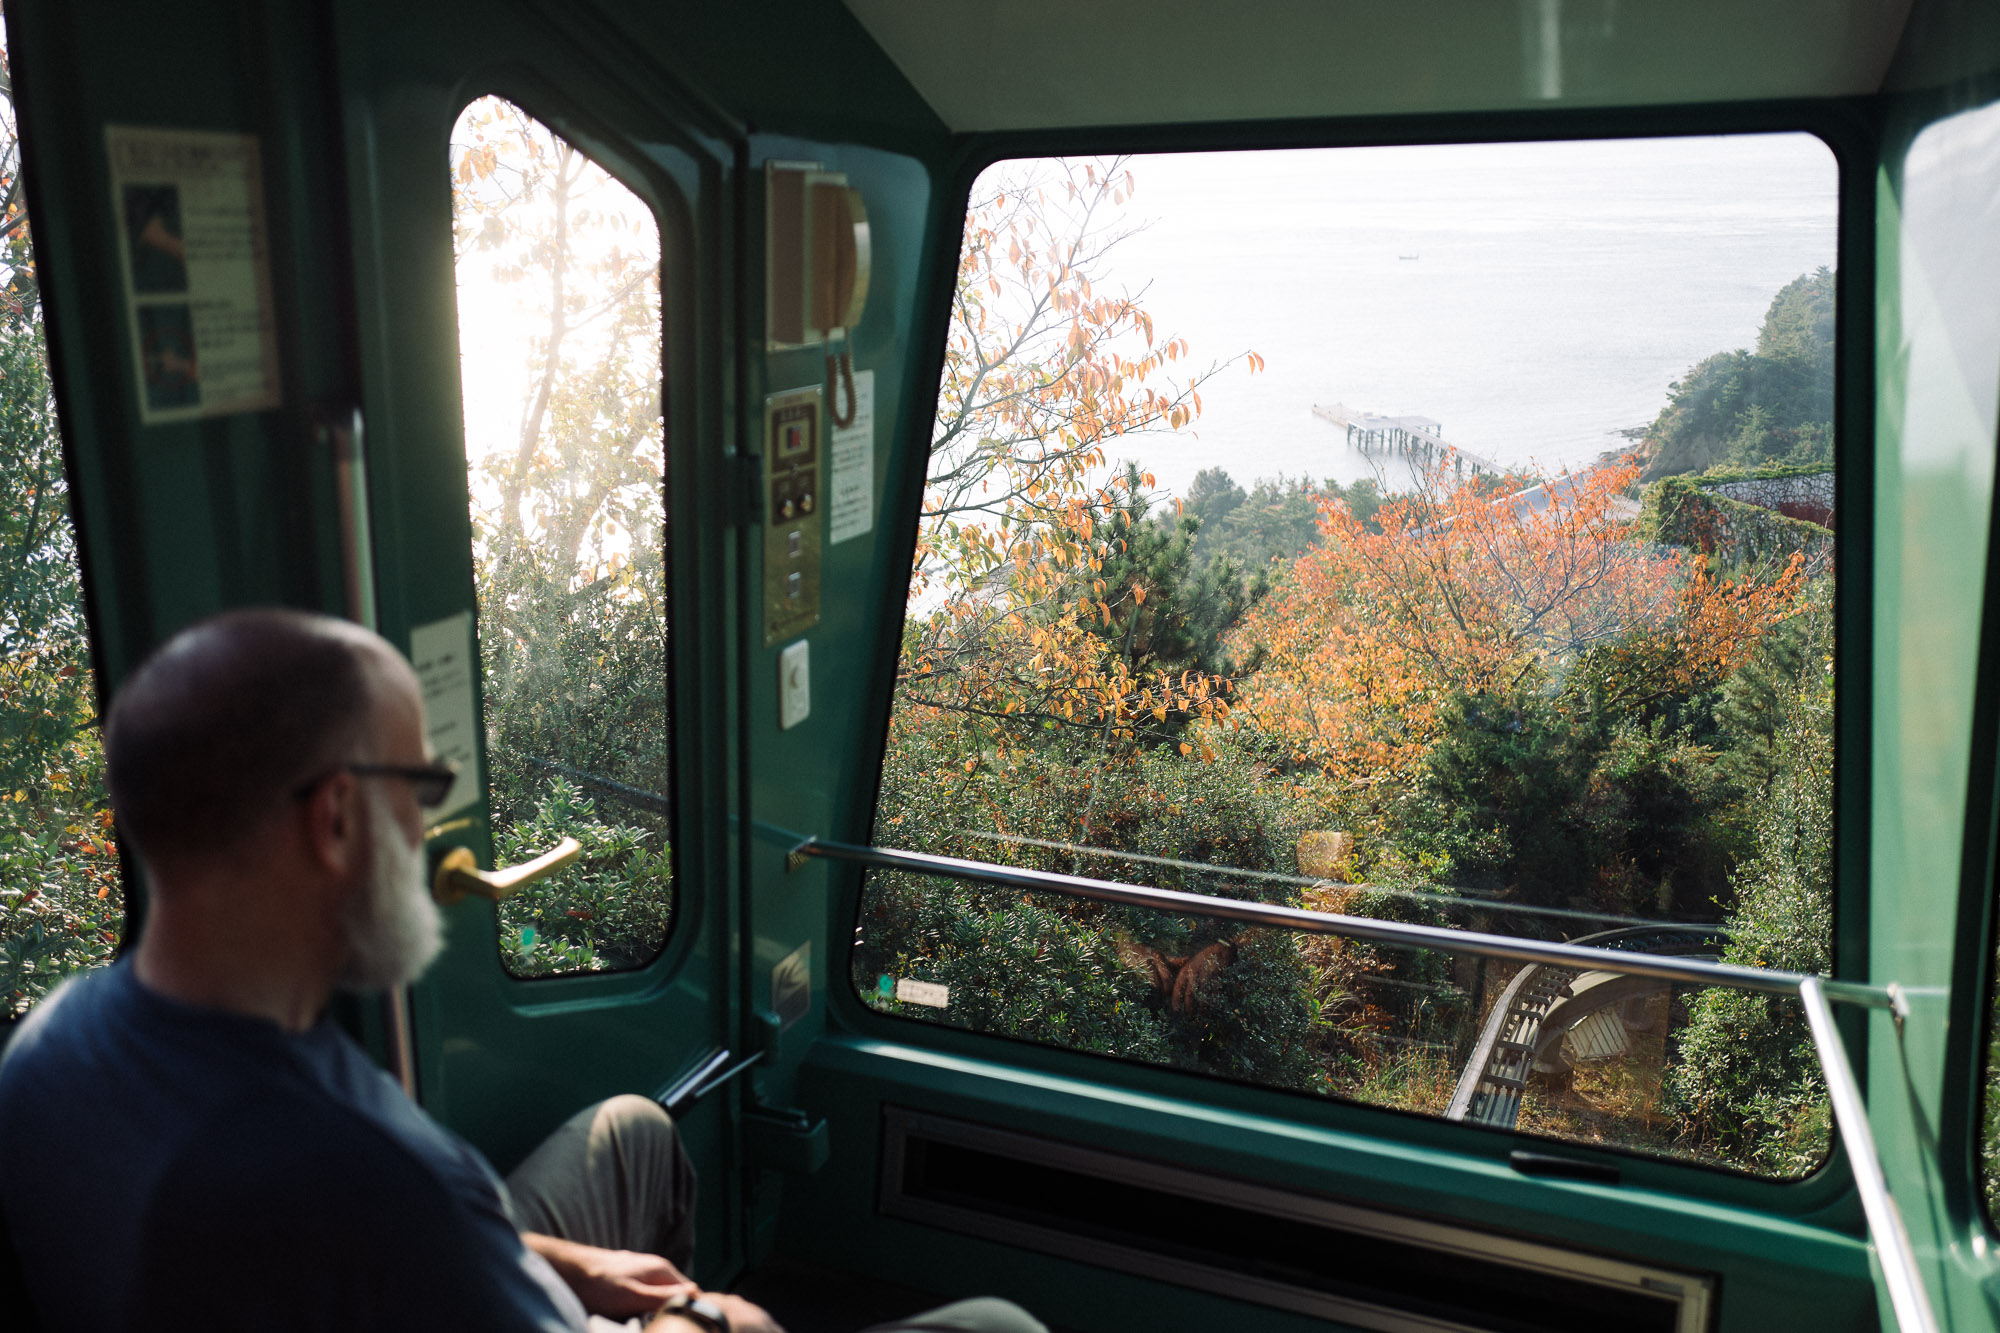 Inside the funicular